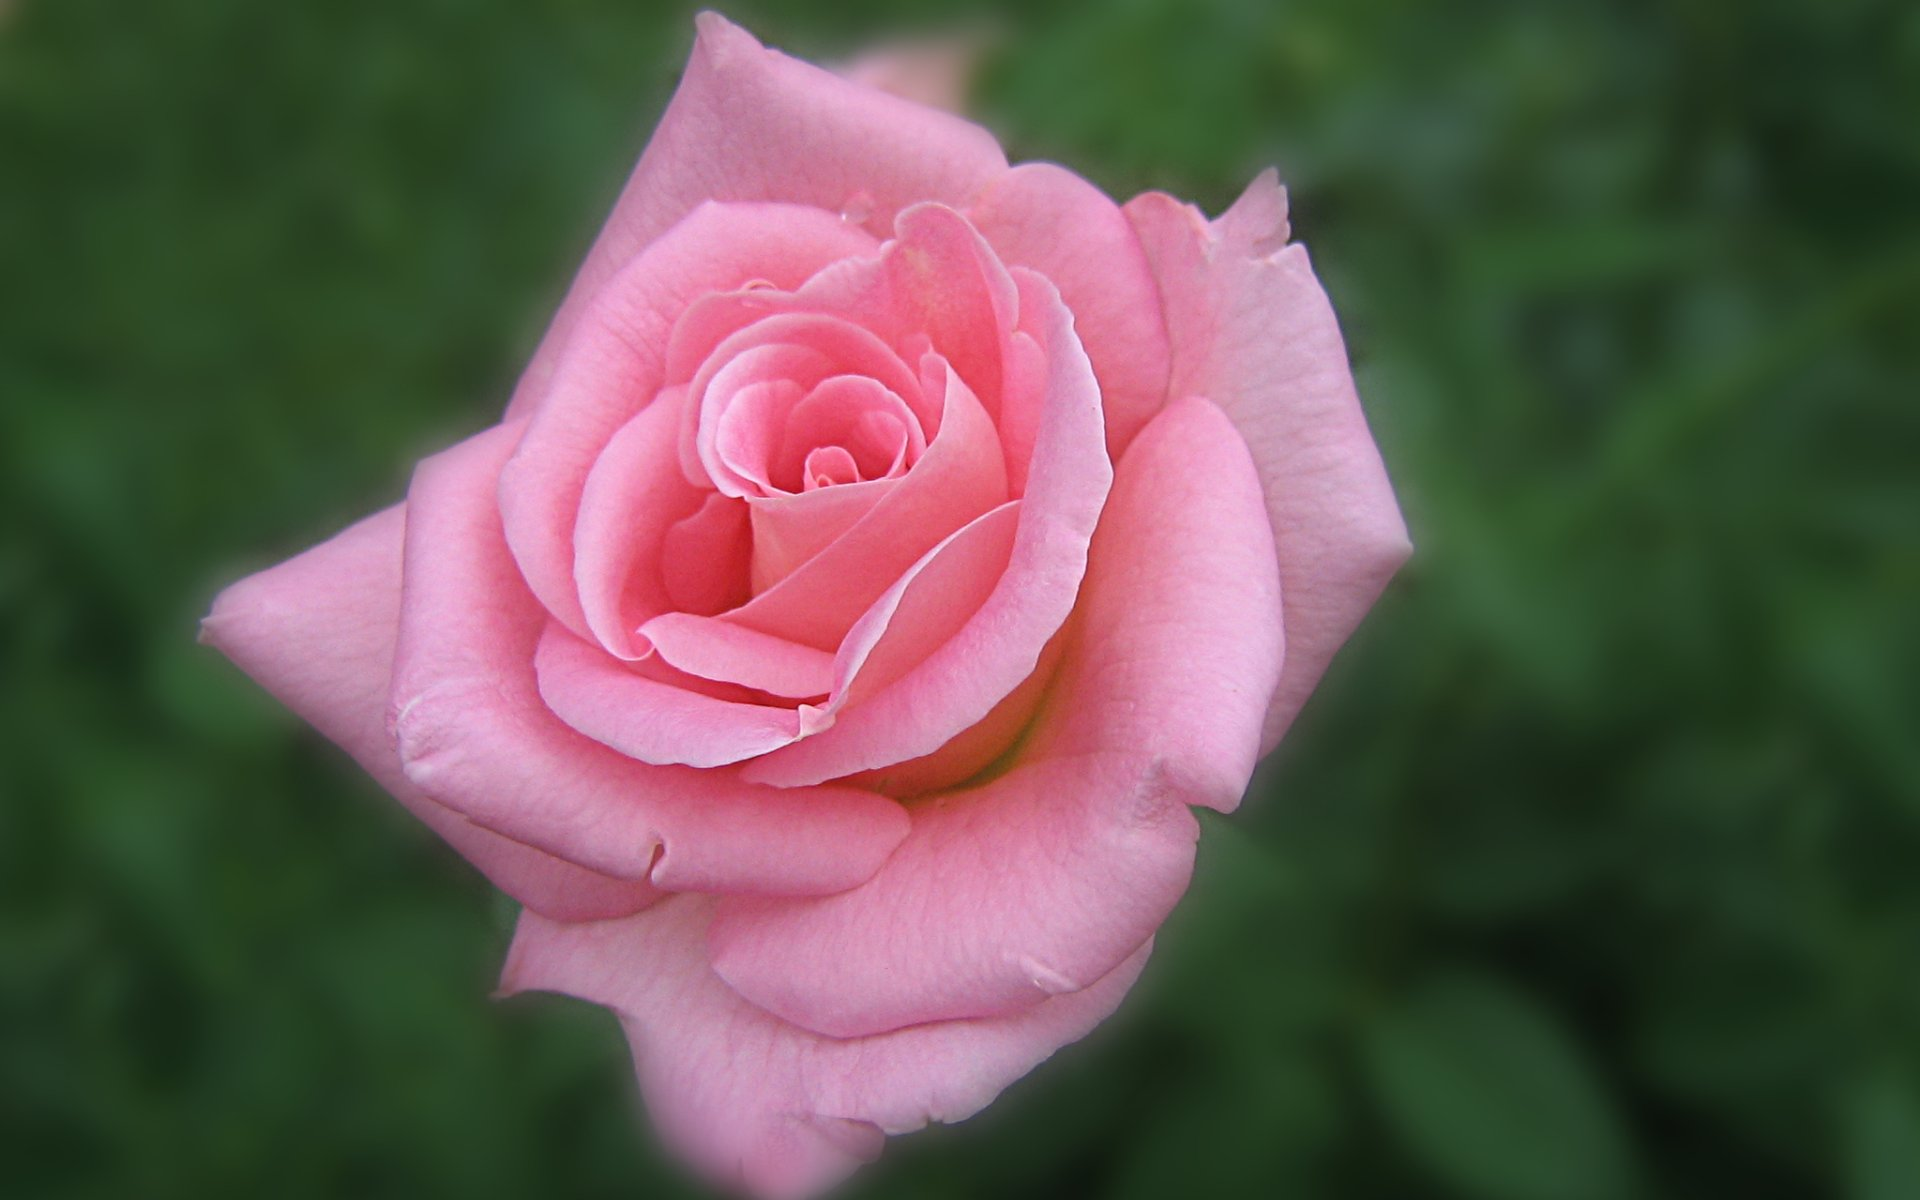 wallpapers widescreen pink roses - photo #15